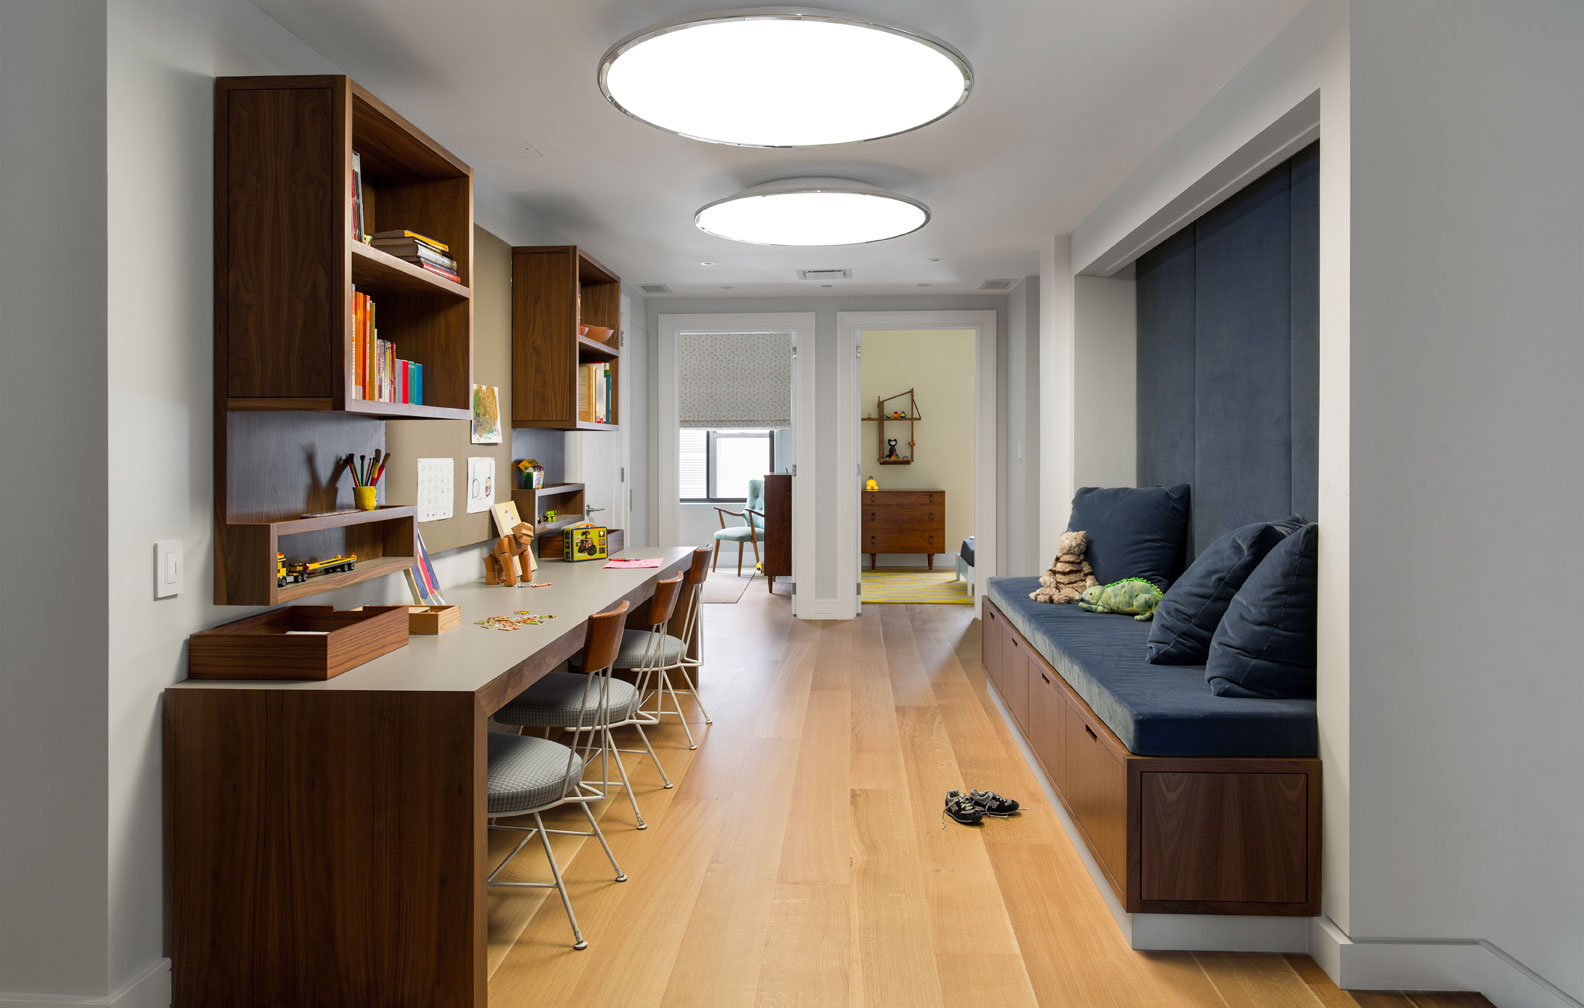 Tips for designing kids spaces remodelaholic for Bedroom study area designs